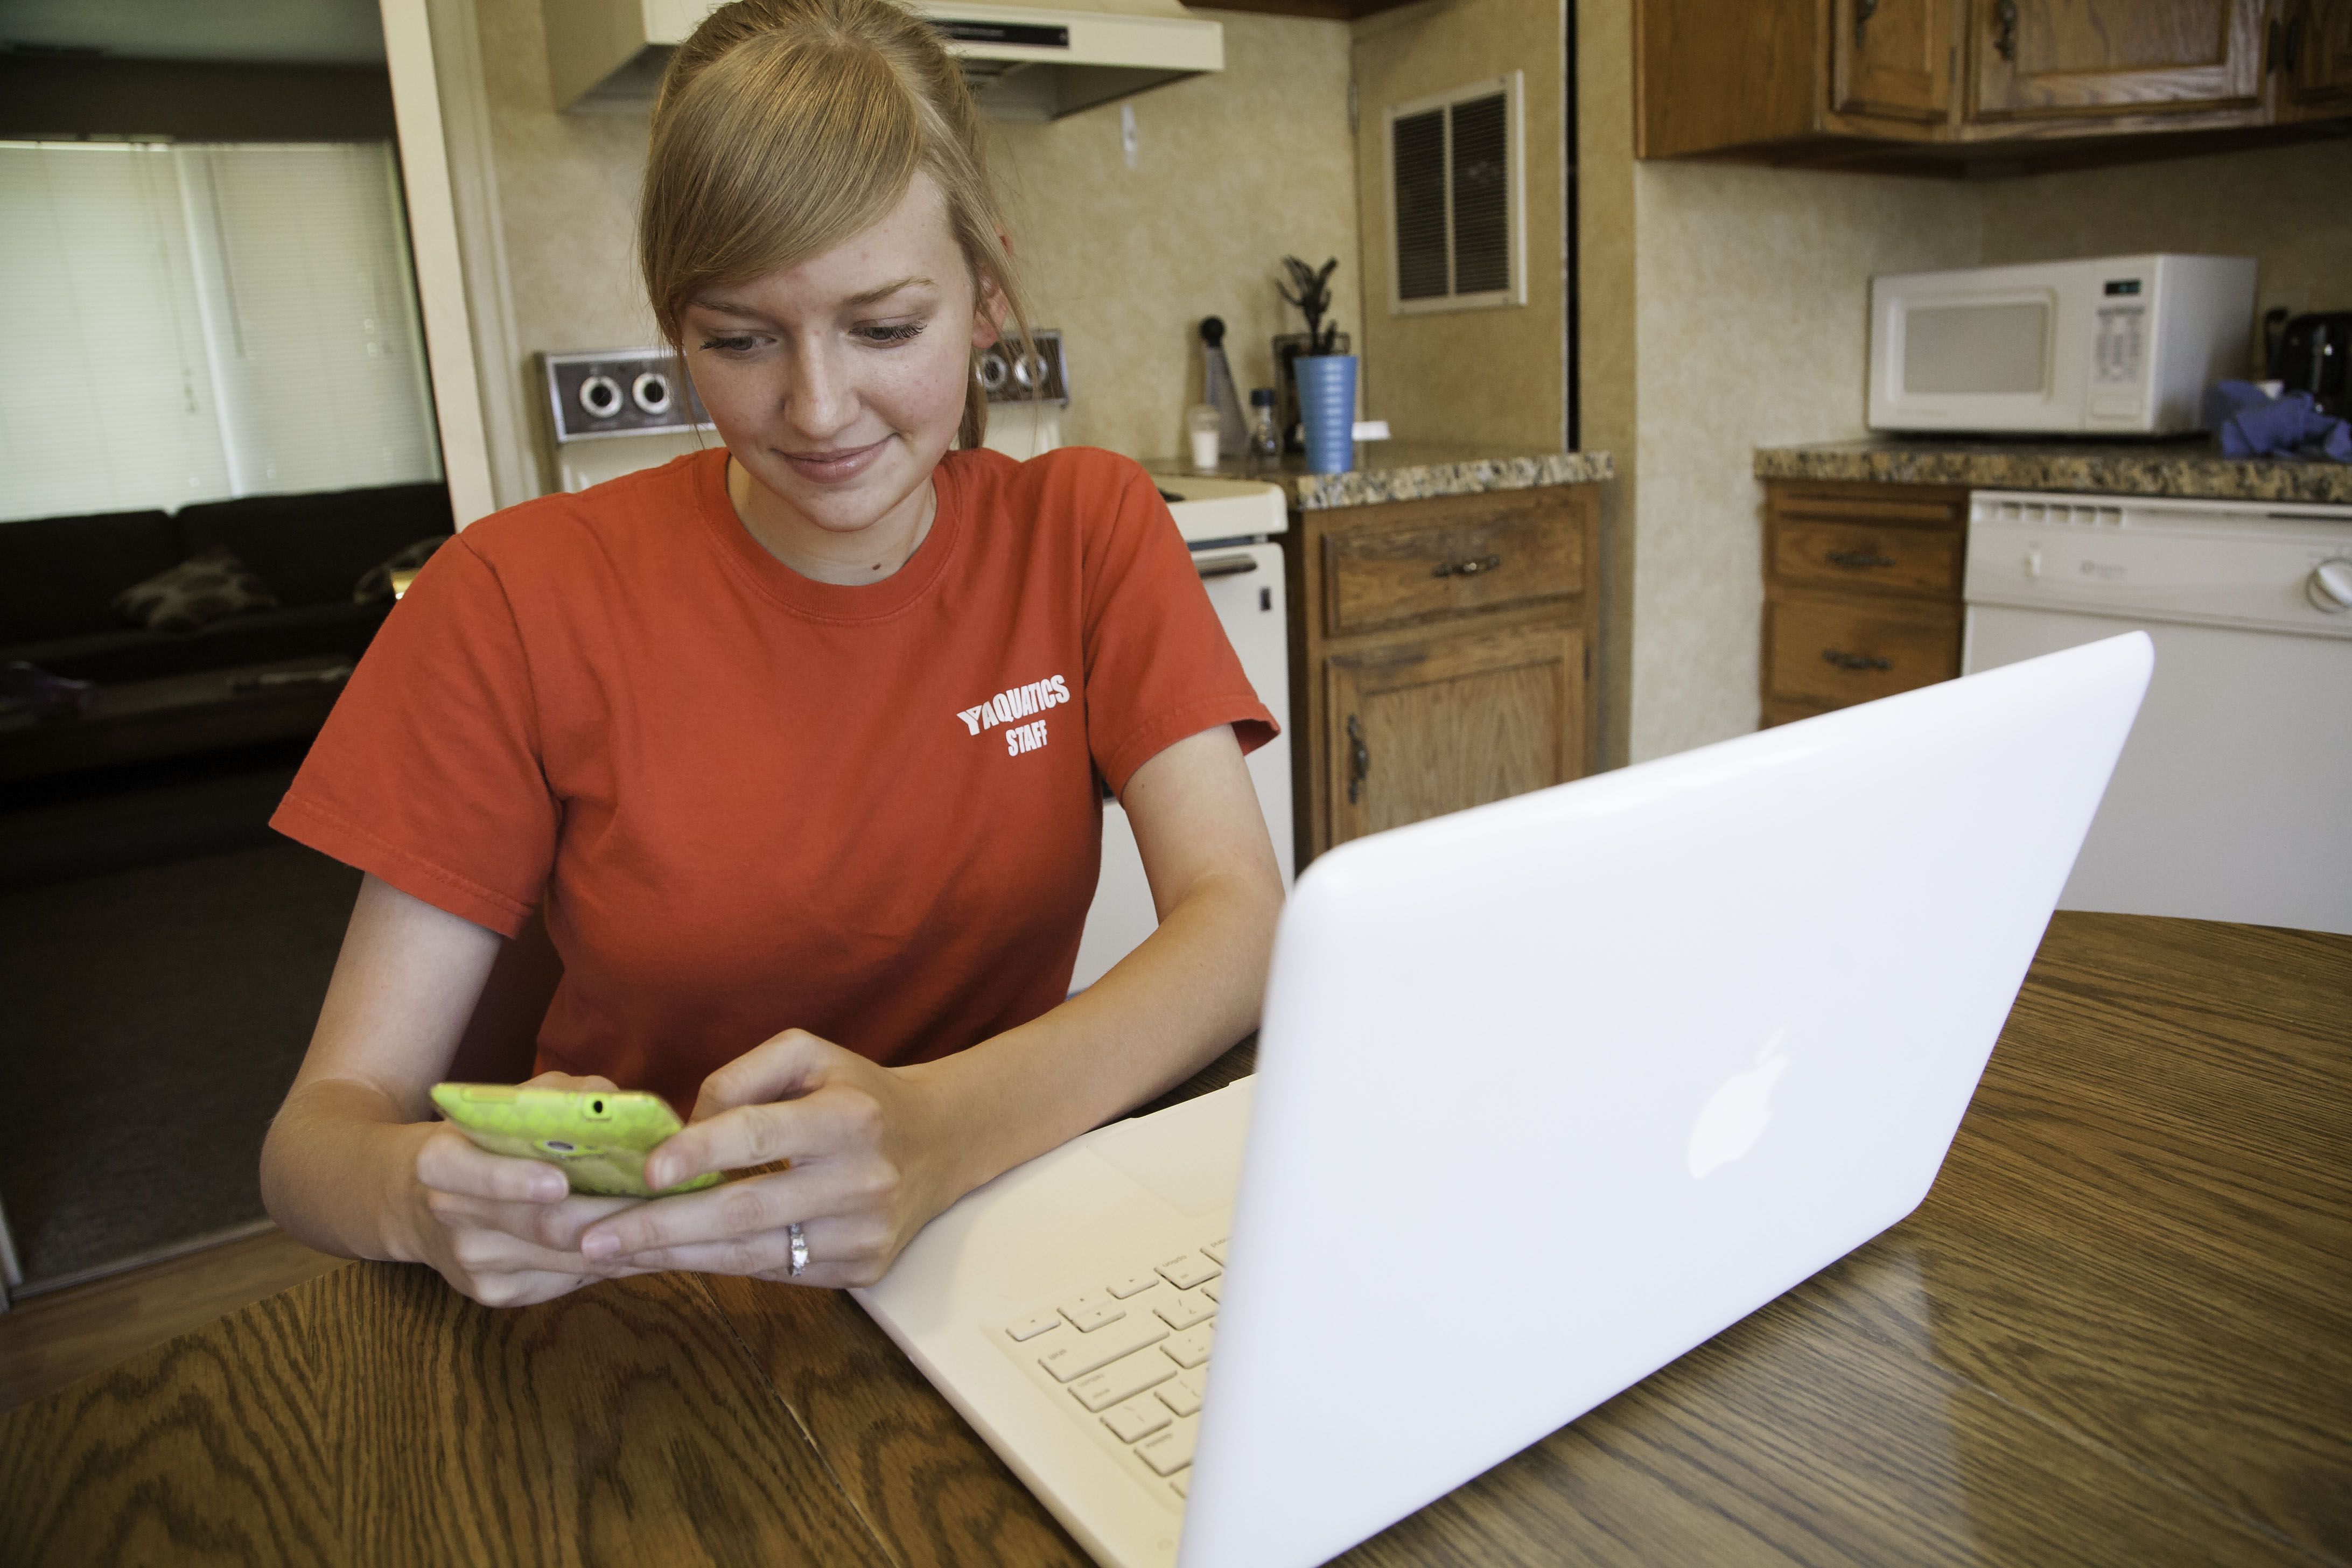 Caitlin Mecham interacts with friends via texting and online messaging.